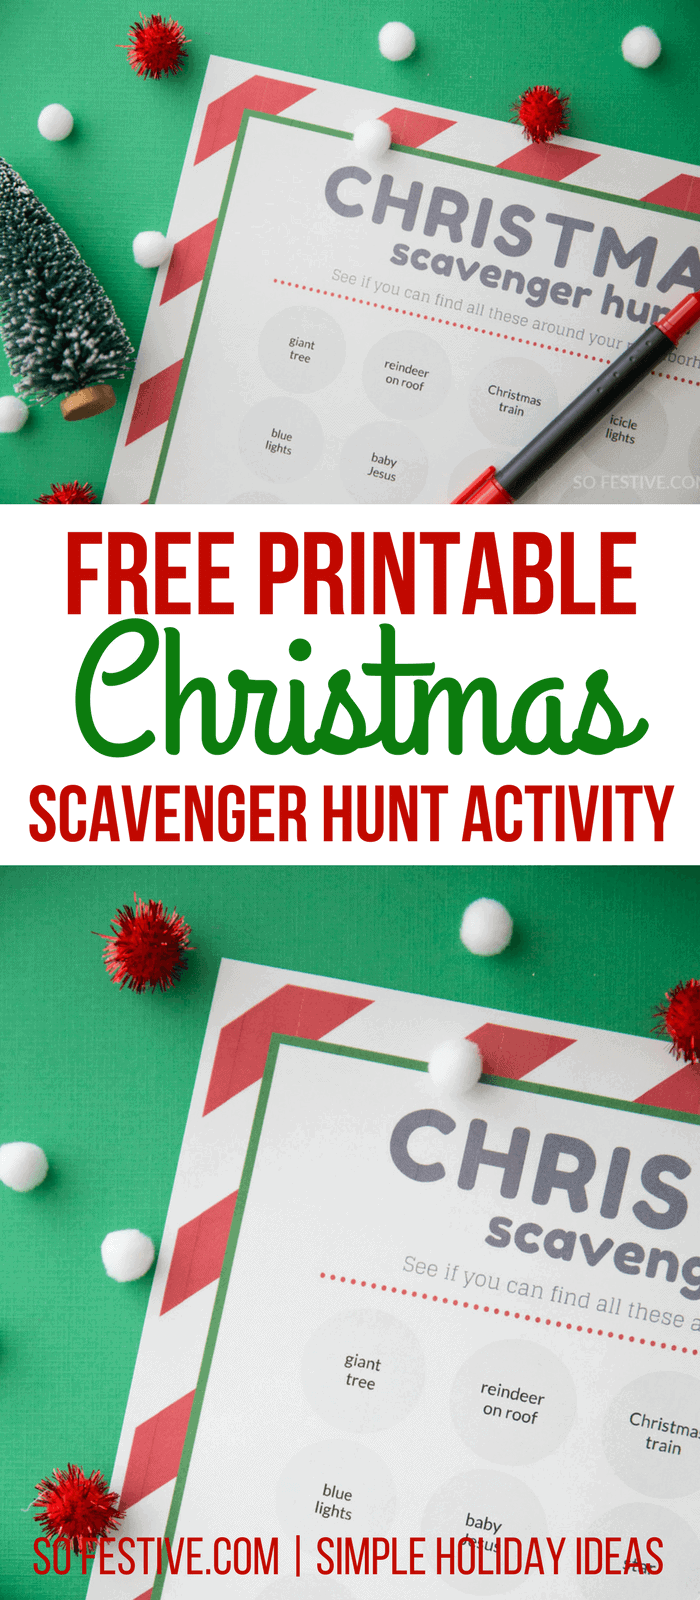 Christmas Scavenger Hunt Free Printable-Family Christmas Activity-Christmas Party Game